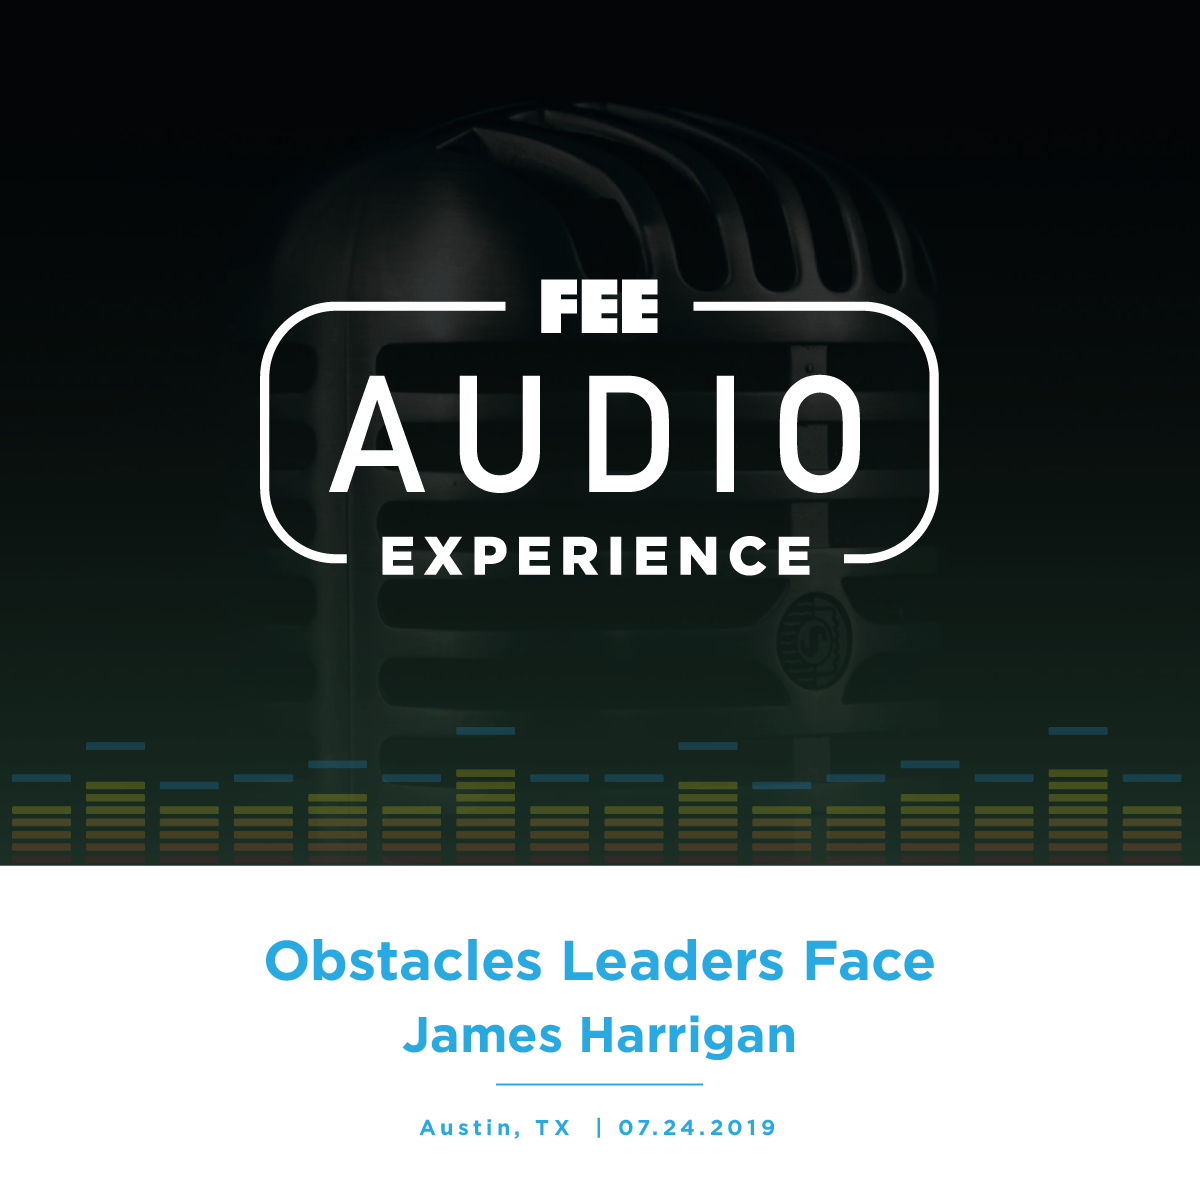 St. Edwards 2019 | Obstacles Leaders Face